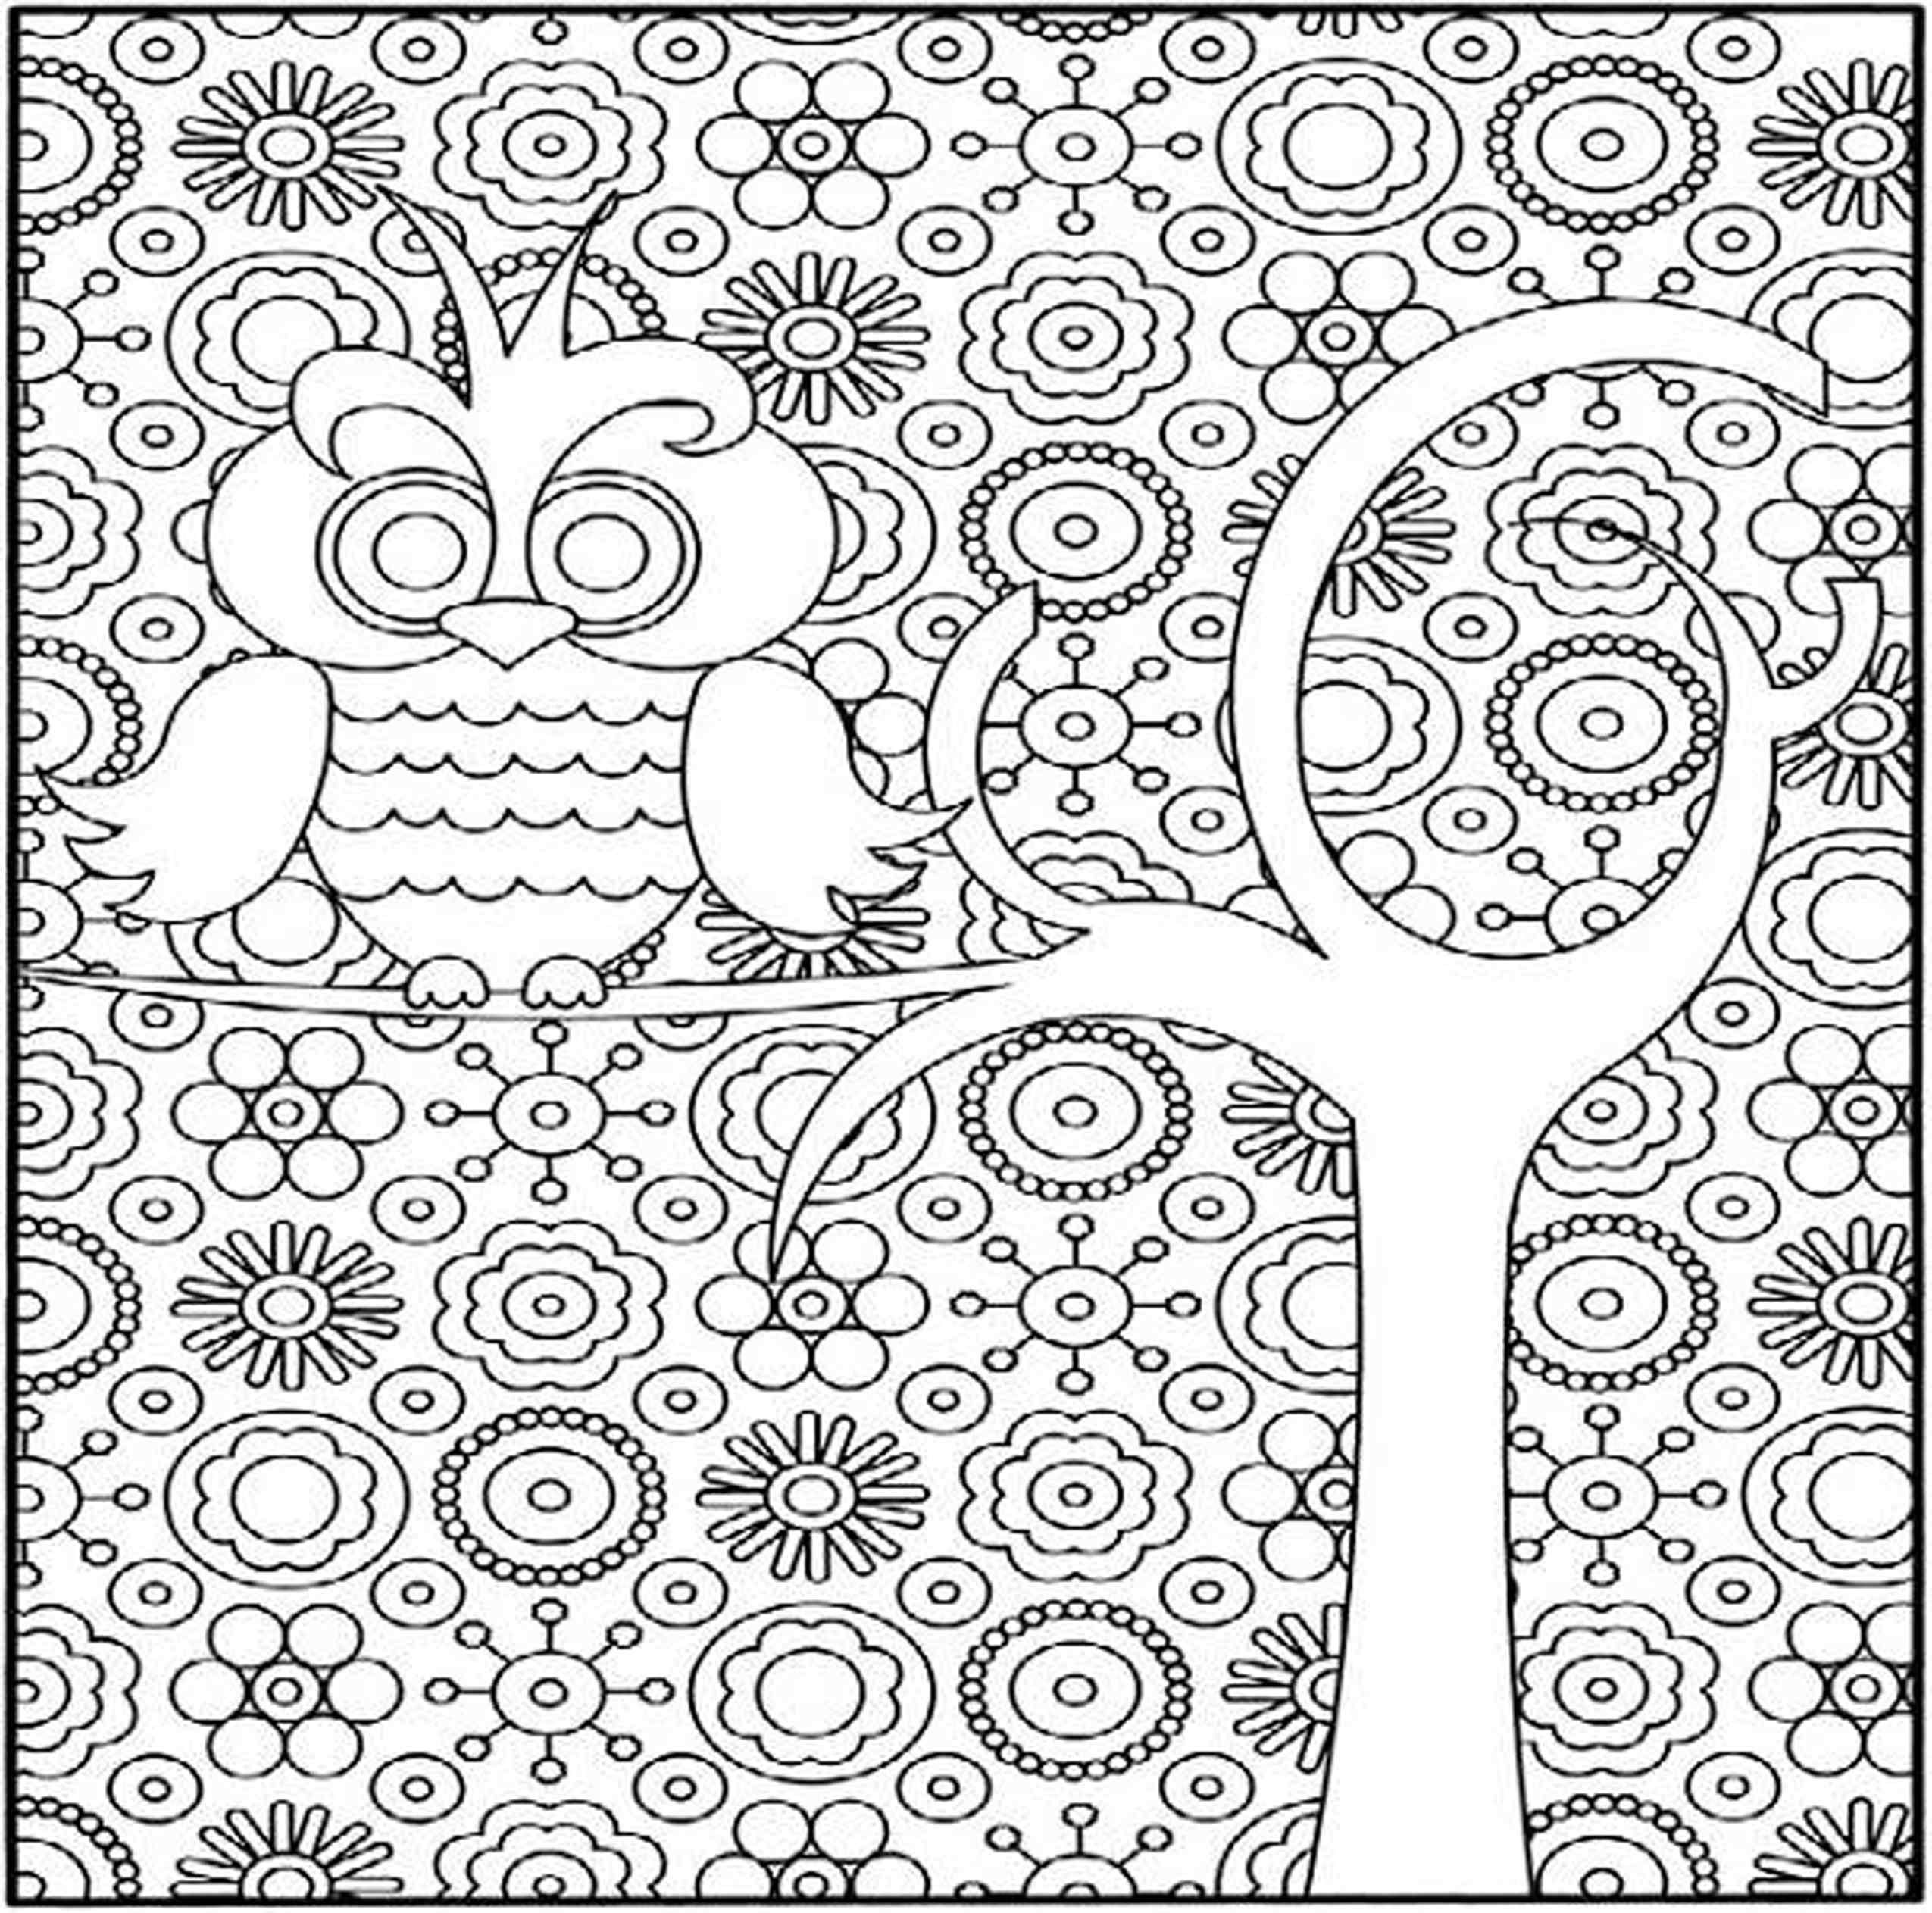 difficult coloring pages for teenagers 49 coloring wallpaper for teens on wallpapersafari for teenagers coloring pages difficult